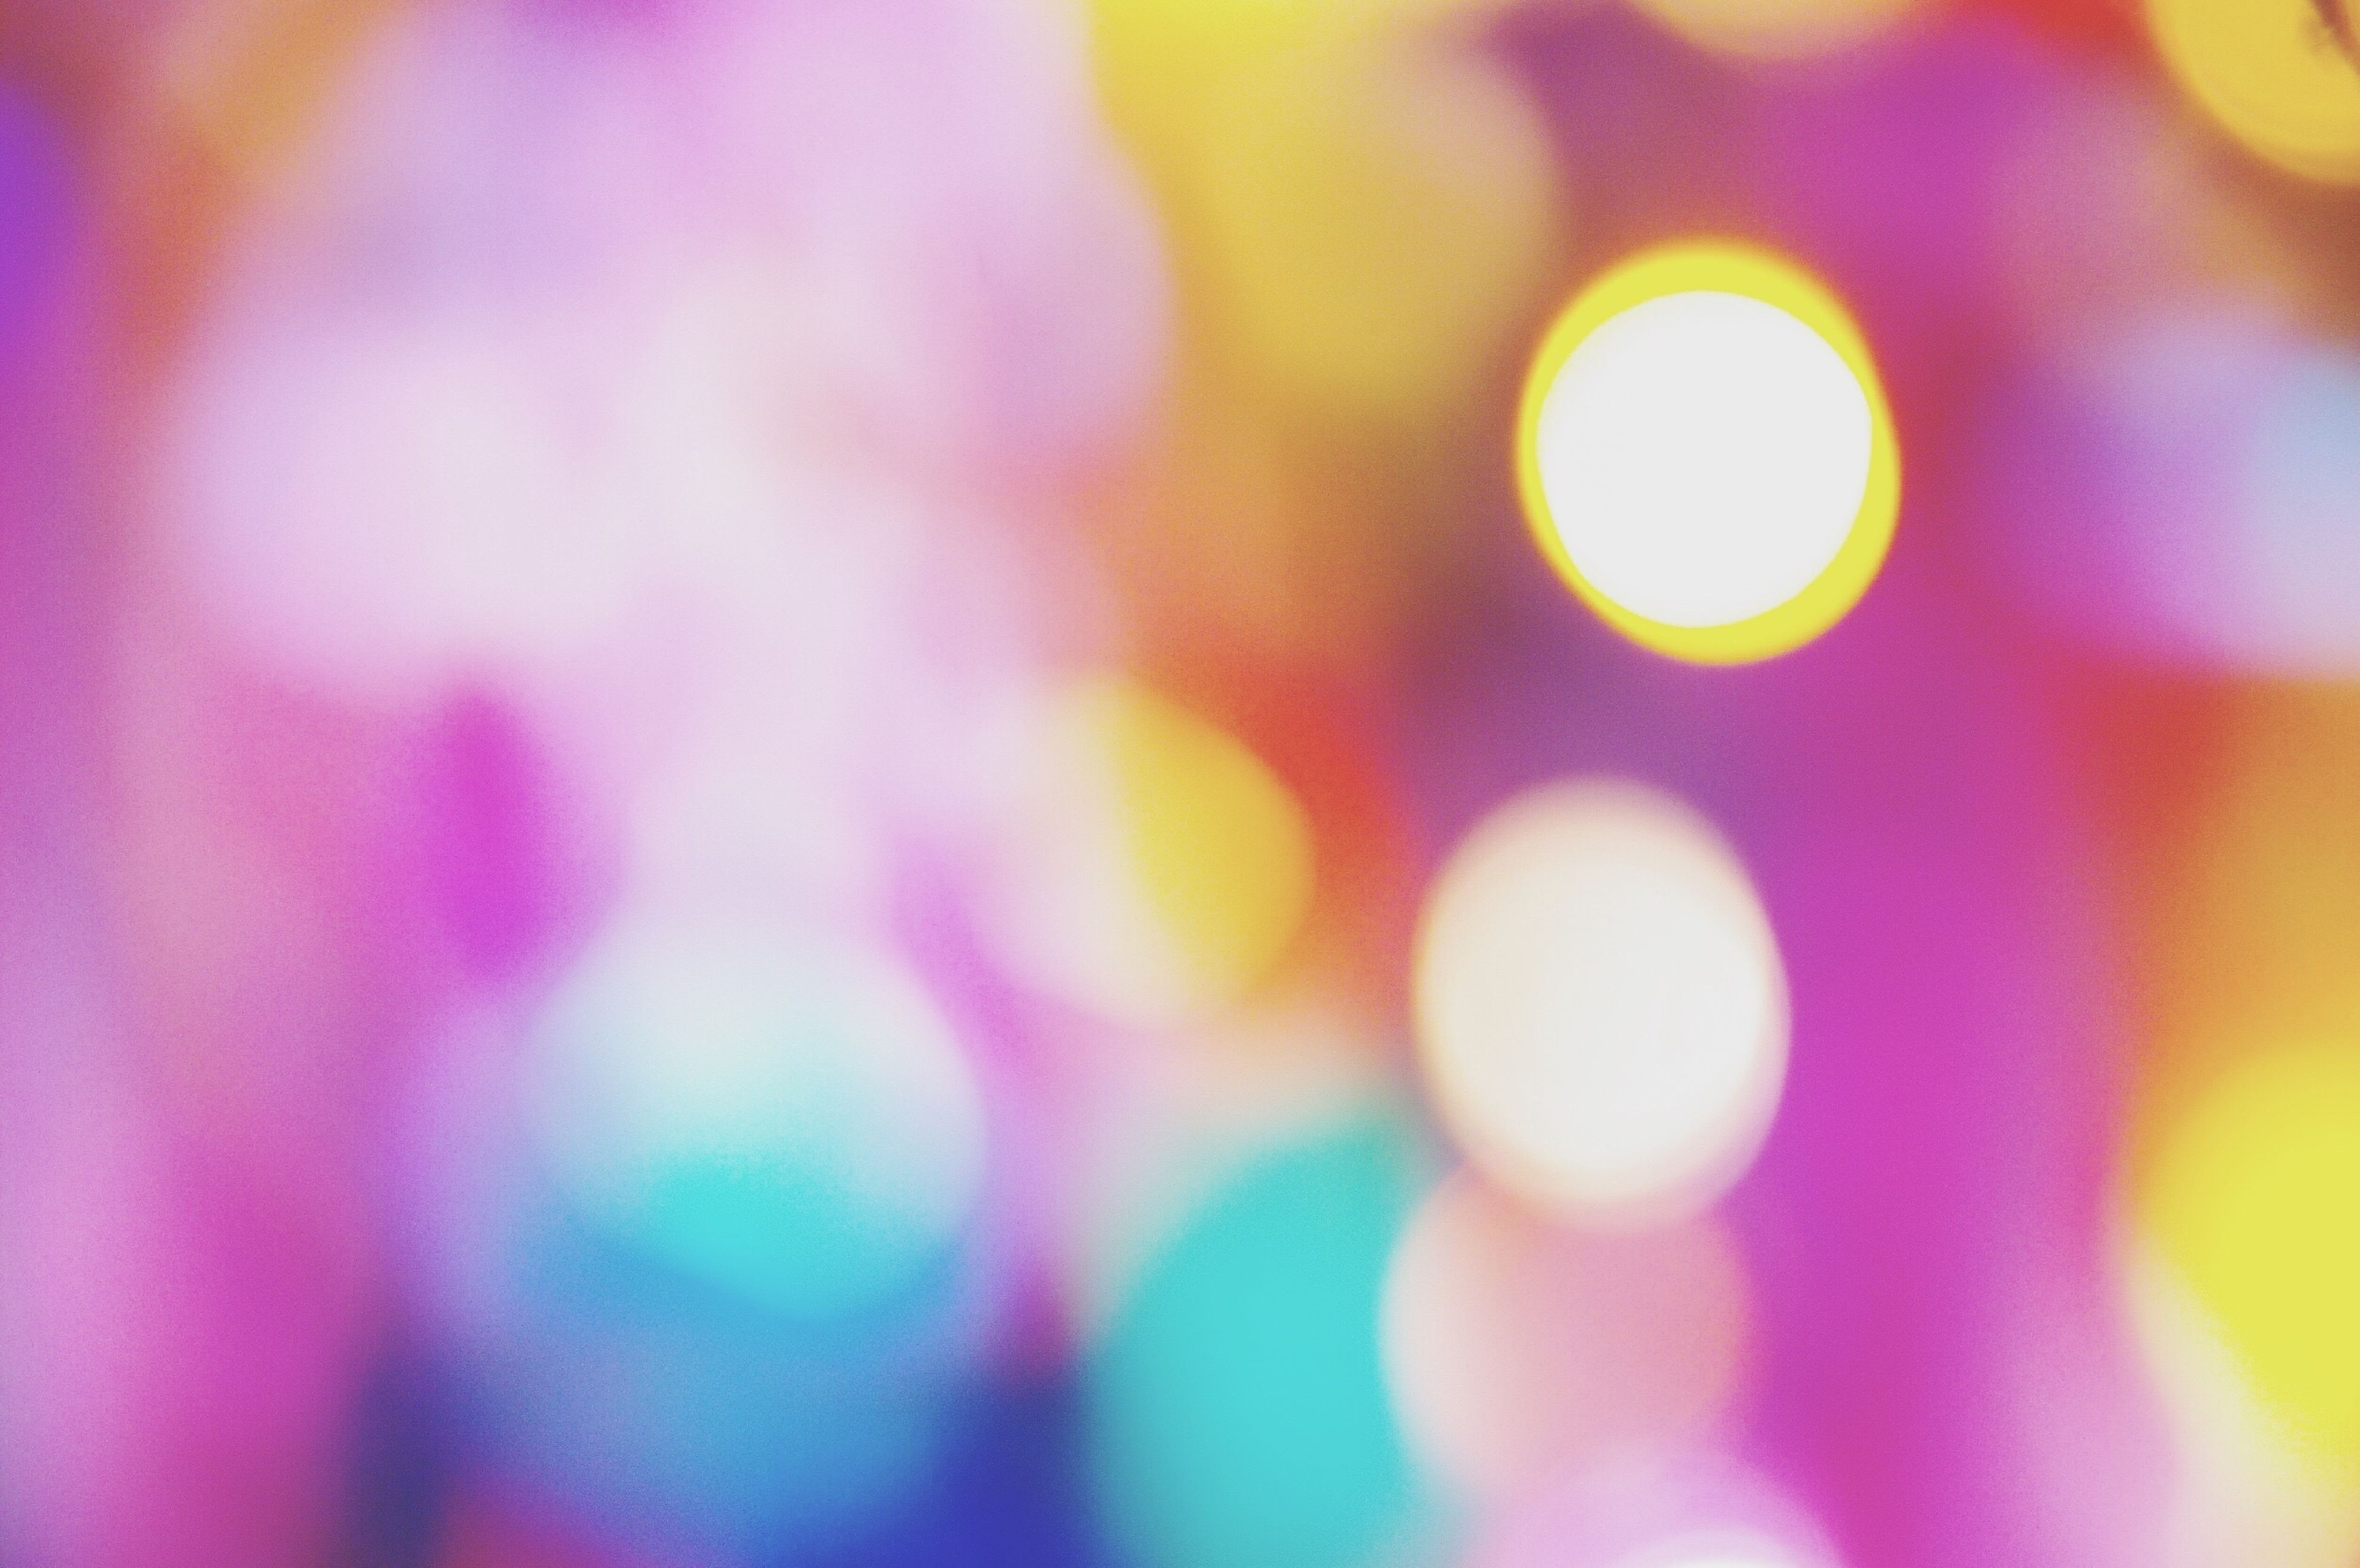 multi colored, abstract, backgrounds, illuminated, no people, close-up, indoors, day